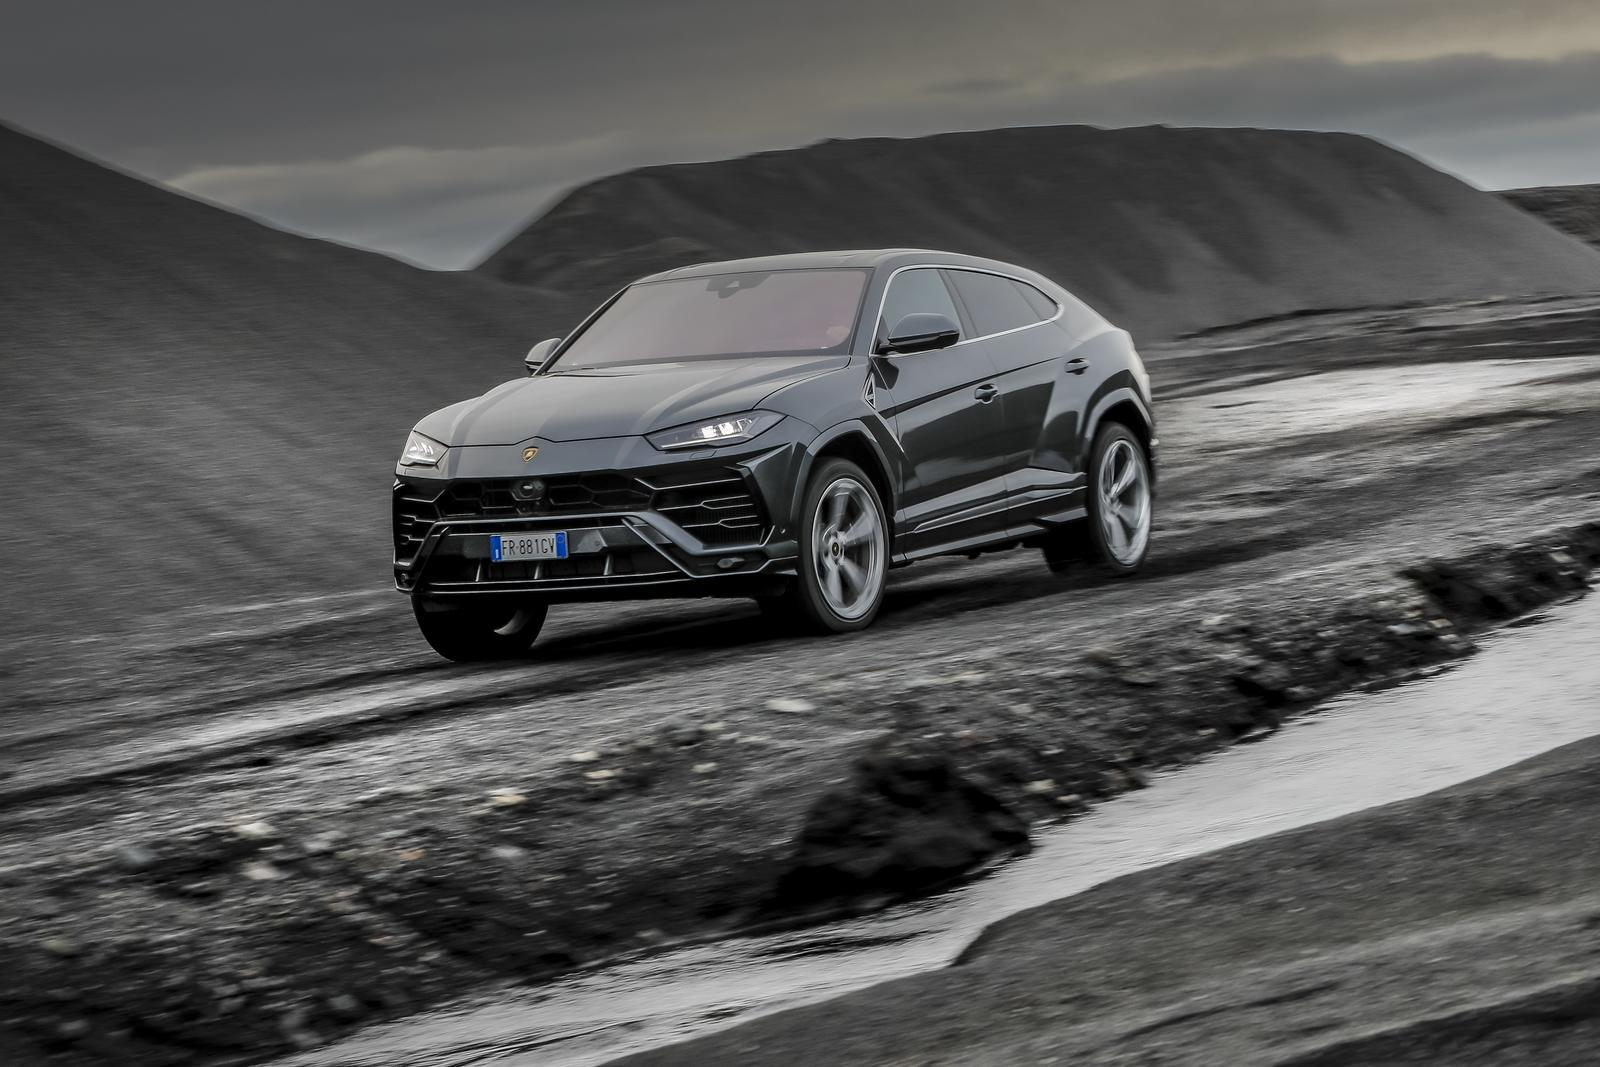 lamborghini urus reviews specs prices photos and videos top speed. Black Bedroom Furniture Sets. Home Design Ideas